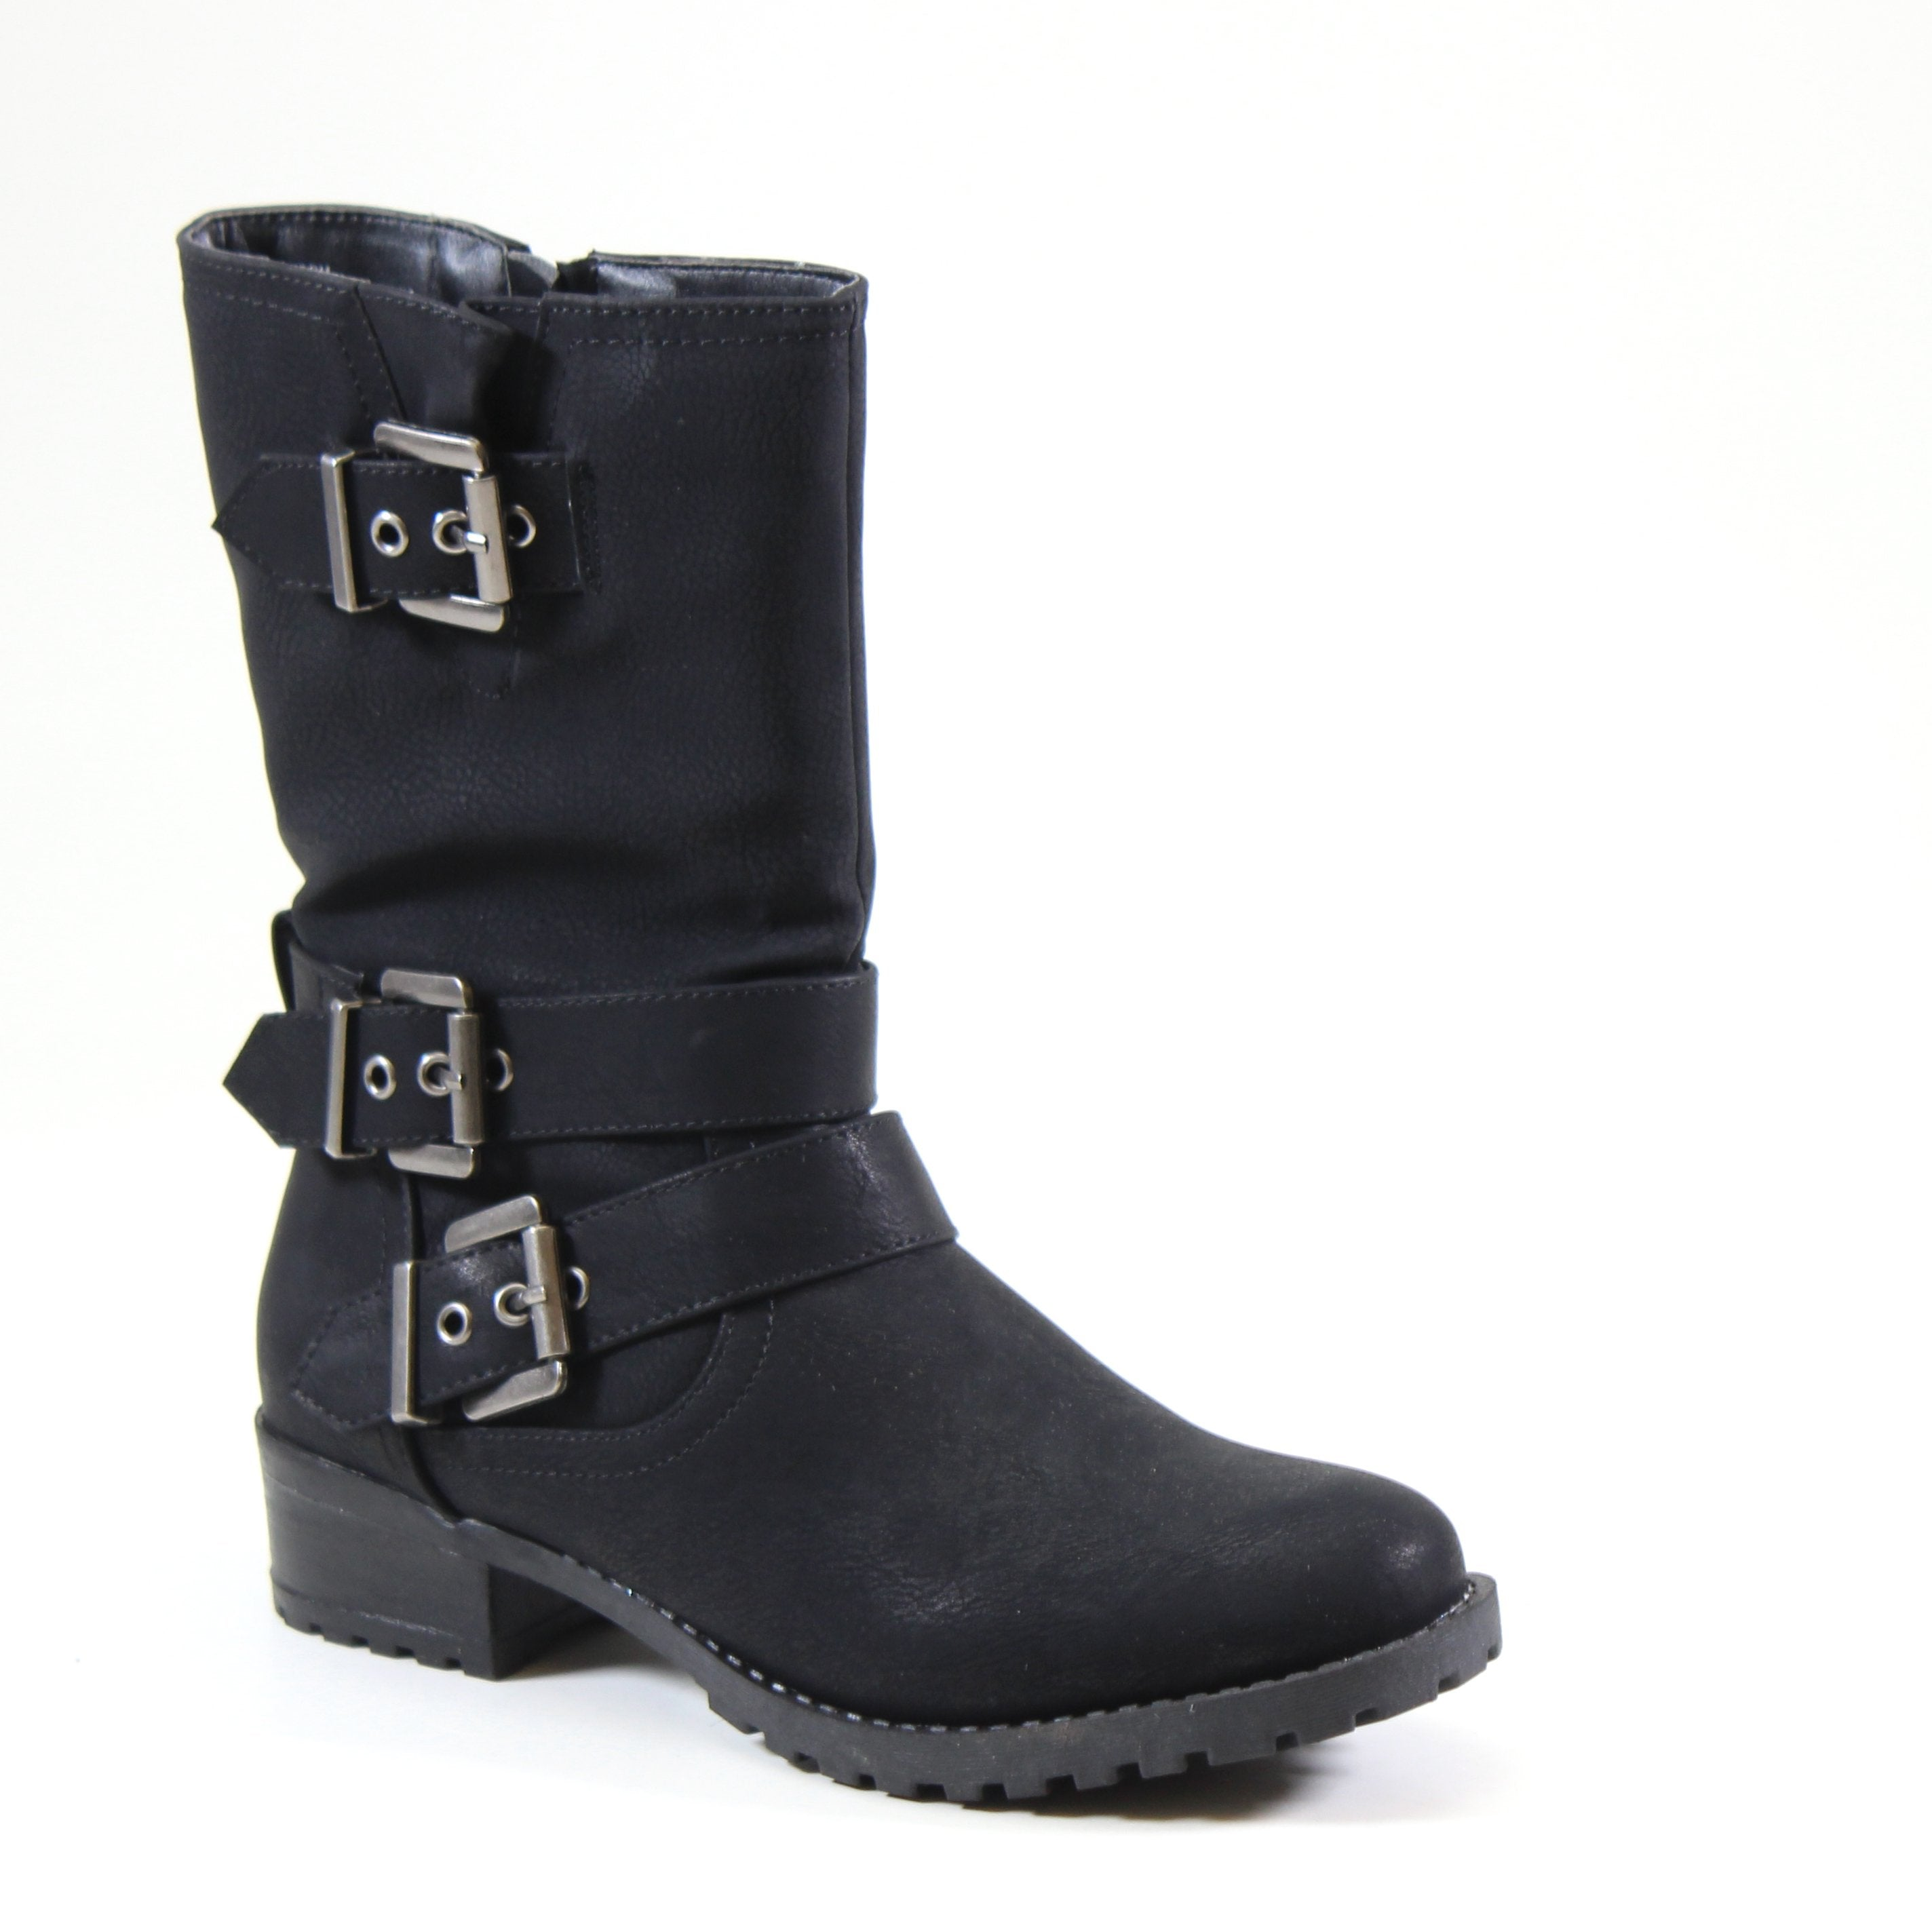 A mid-length vegan leather combat boot with multi- buckle detailing, inside zipper entry and lug sole wood scrapped heel.